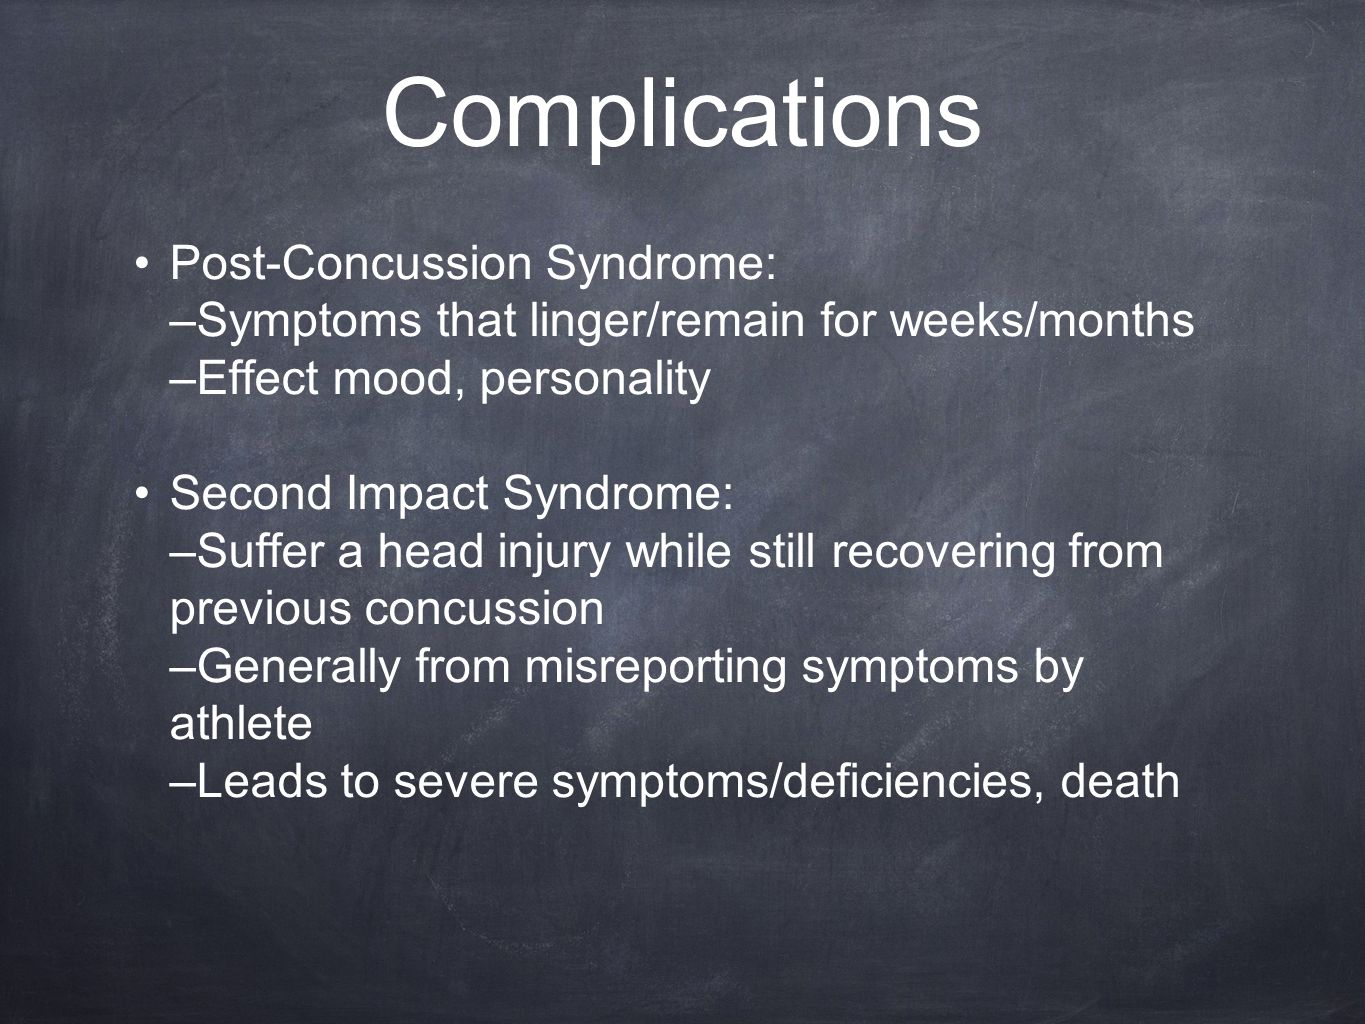 Complications Post-Concussion Syndrome: –Symptoms that linger/remain for weeks/months –Effect mood, personality Second Impact Syndrome: –Suffer a head injury while still recovering from previous concussion –Generally from misreporting symptoms by athlete –Leads to severe symptoms/deficiencies, death